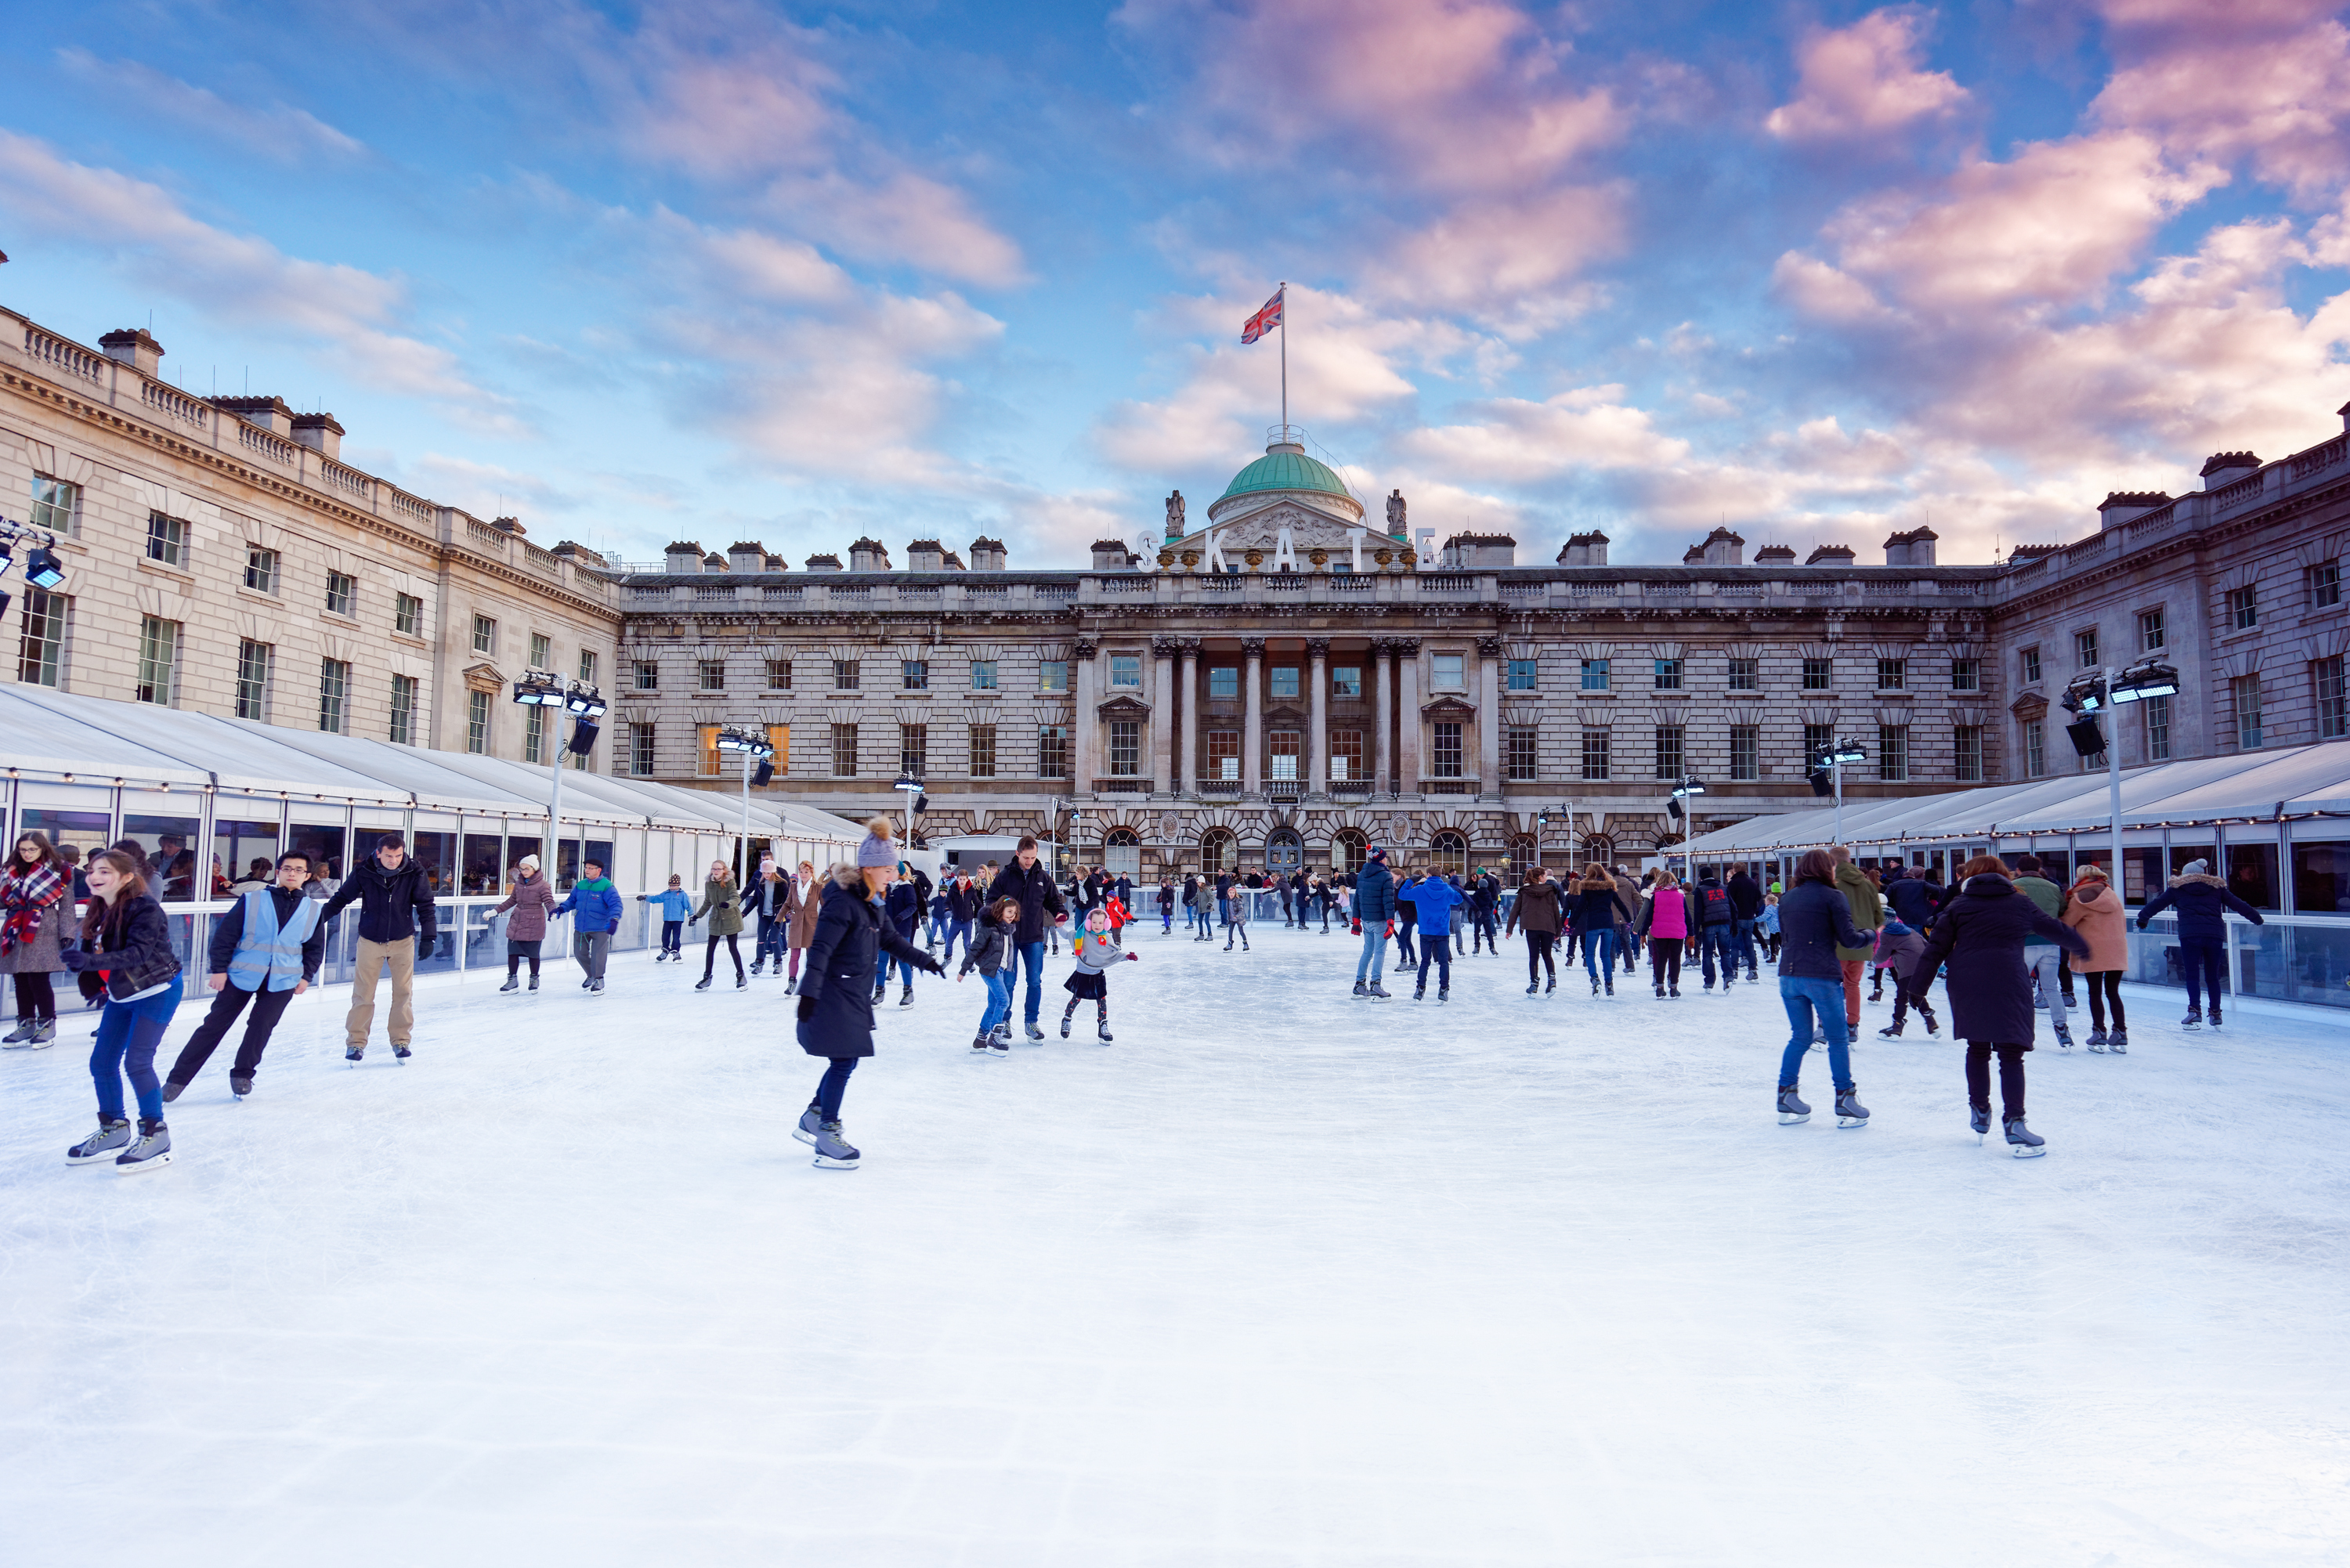 Fancy some Somerset House skating? Find out everything through SMC Coach Hire.